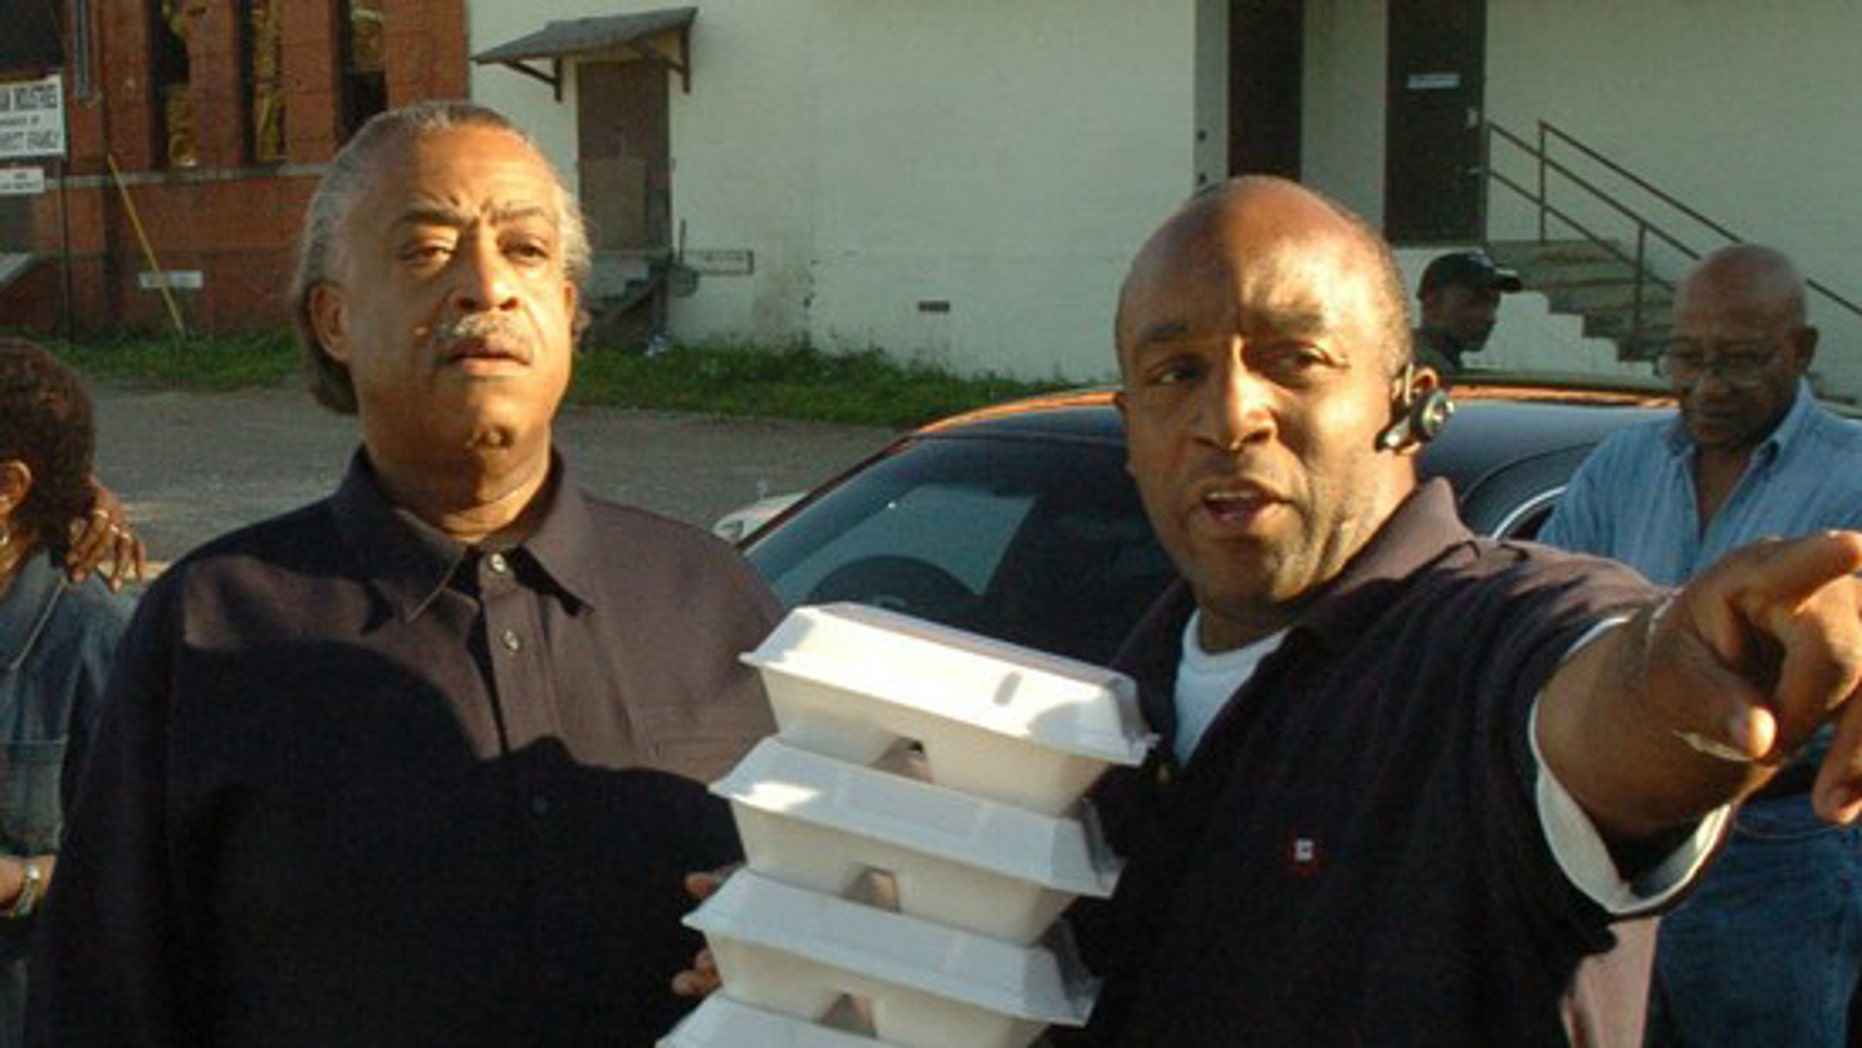 The Rev. Al Sharpton, left, is seen with Kenneth Glasgow, as they deliver holiday meals on Thanksgiving Day in 2006 in Dothan, Ala.